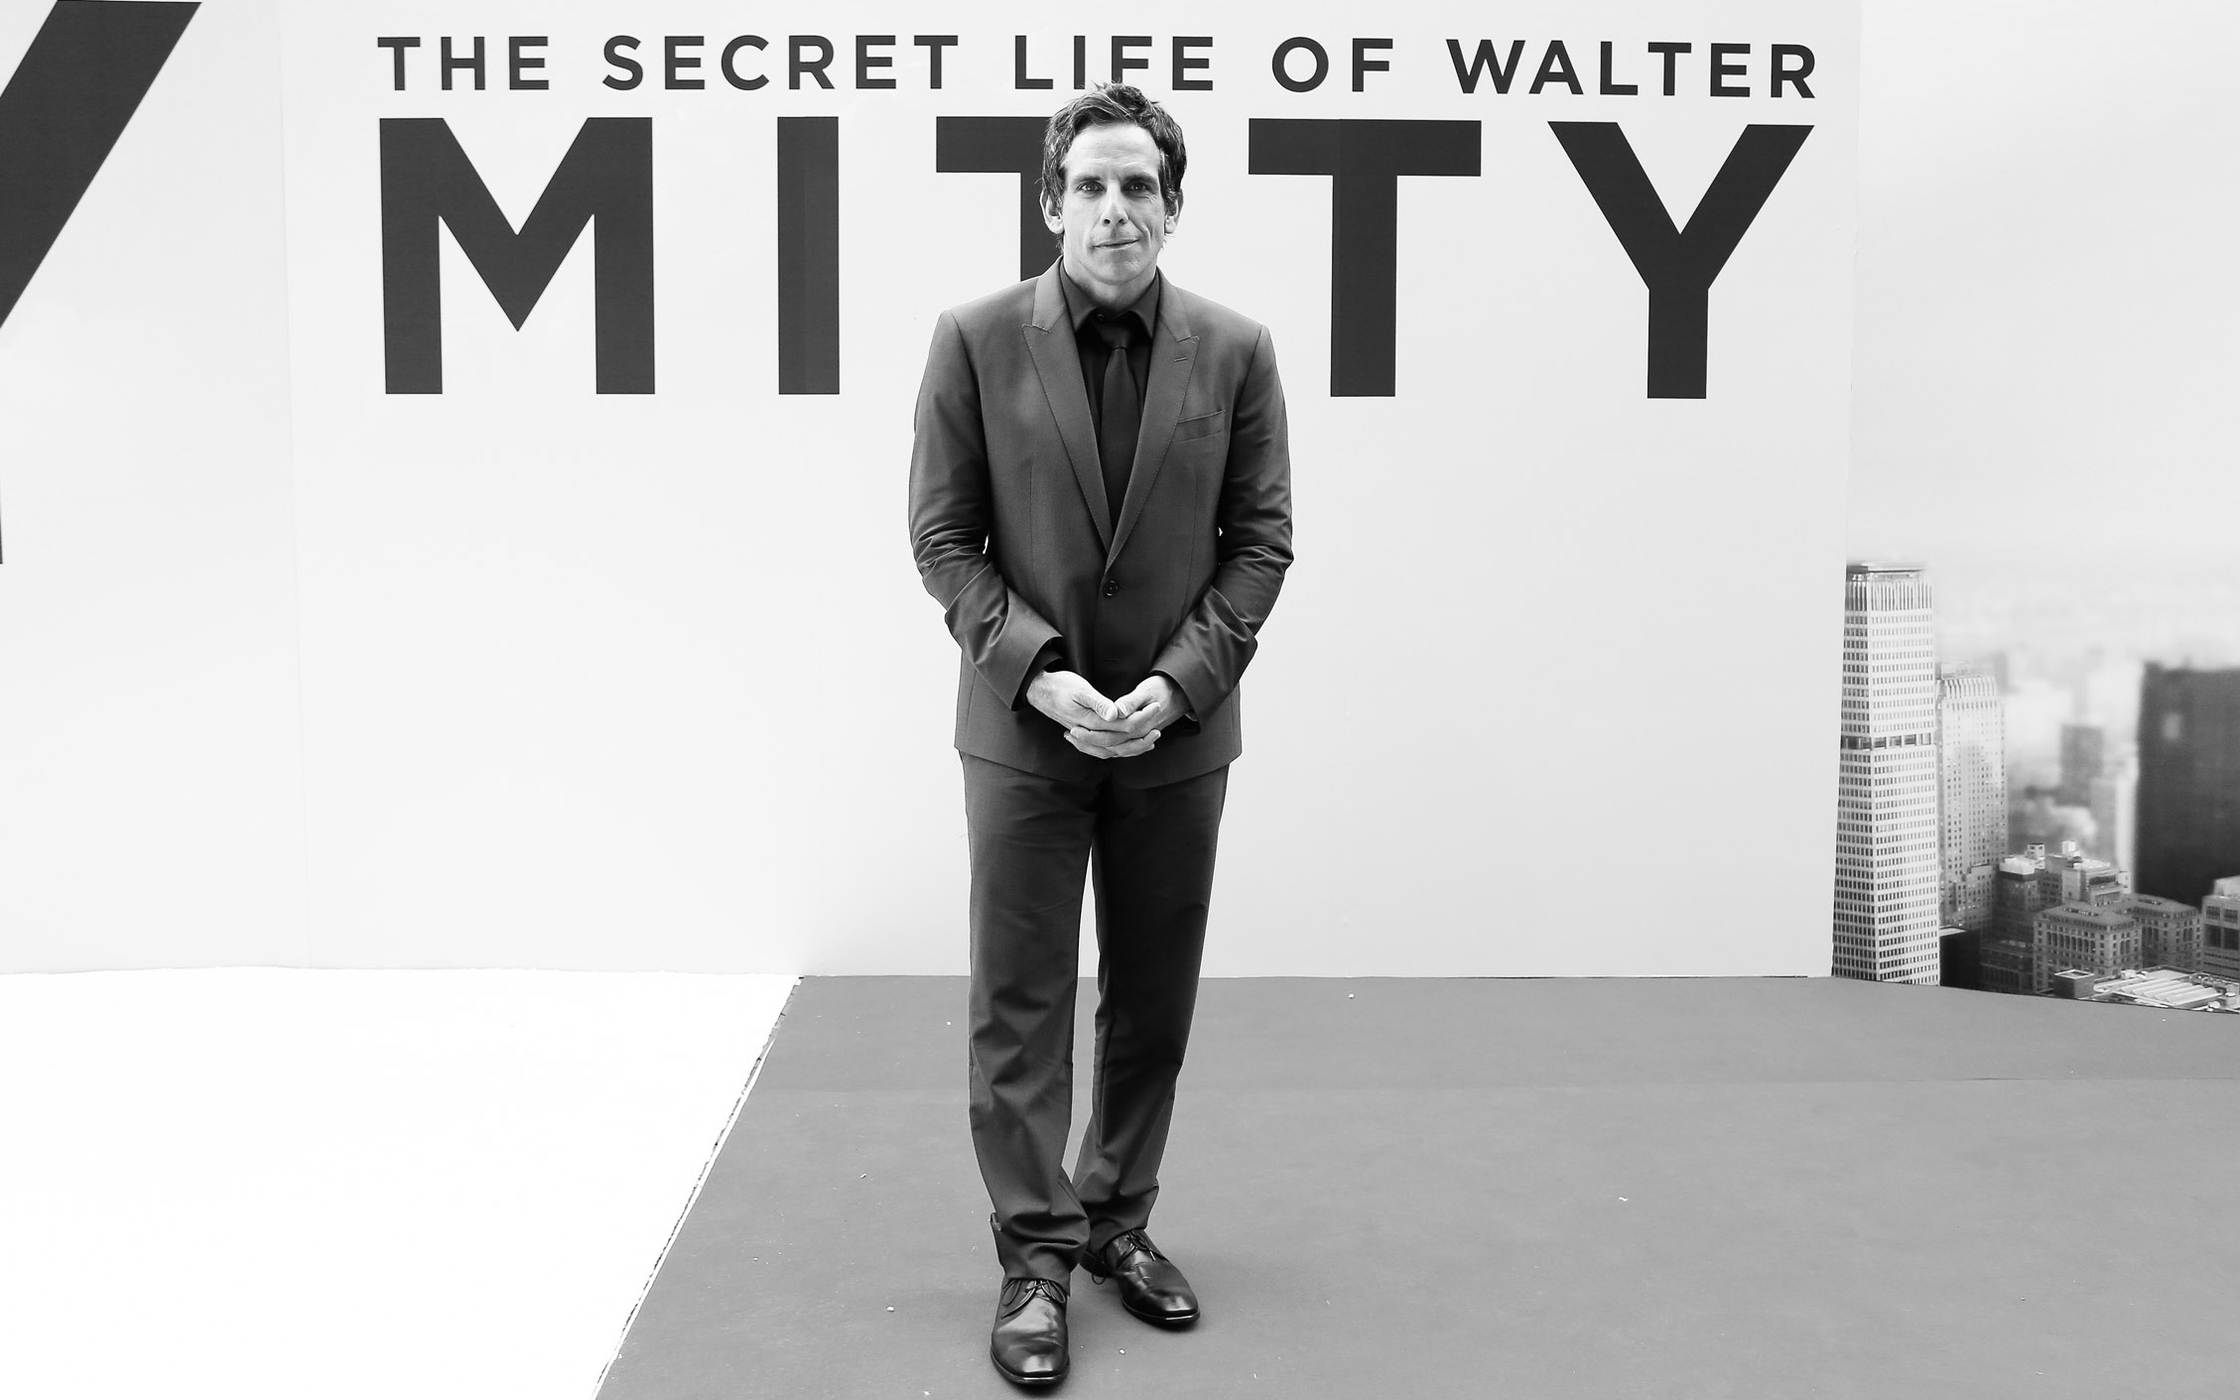 walter mitty wallpaper - photo #25